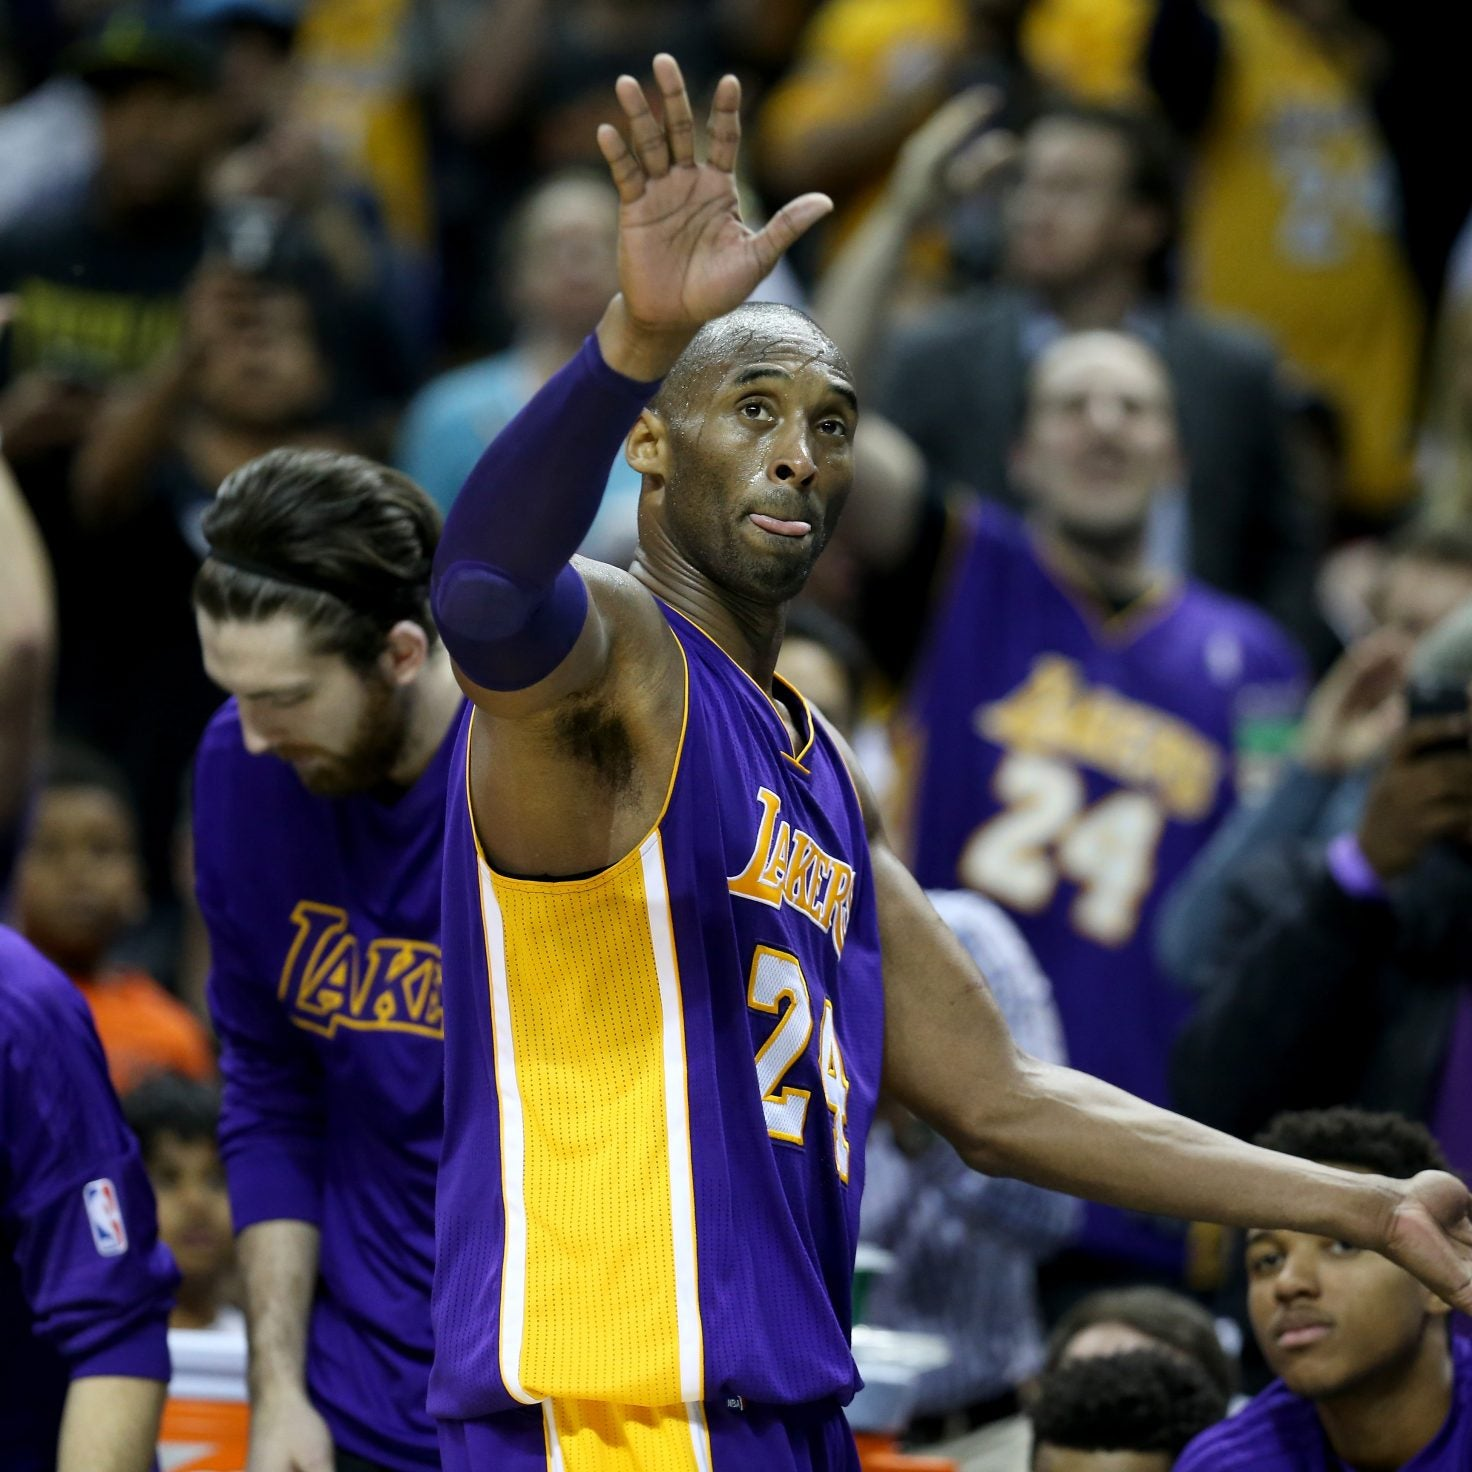 A Look At Kobe Bryant's Inspirational Life And History-Making Career In Photos